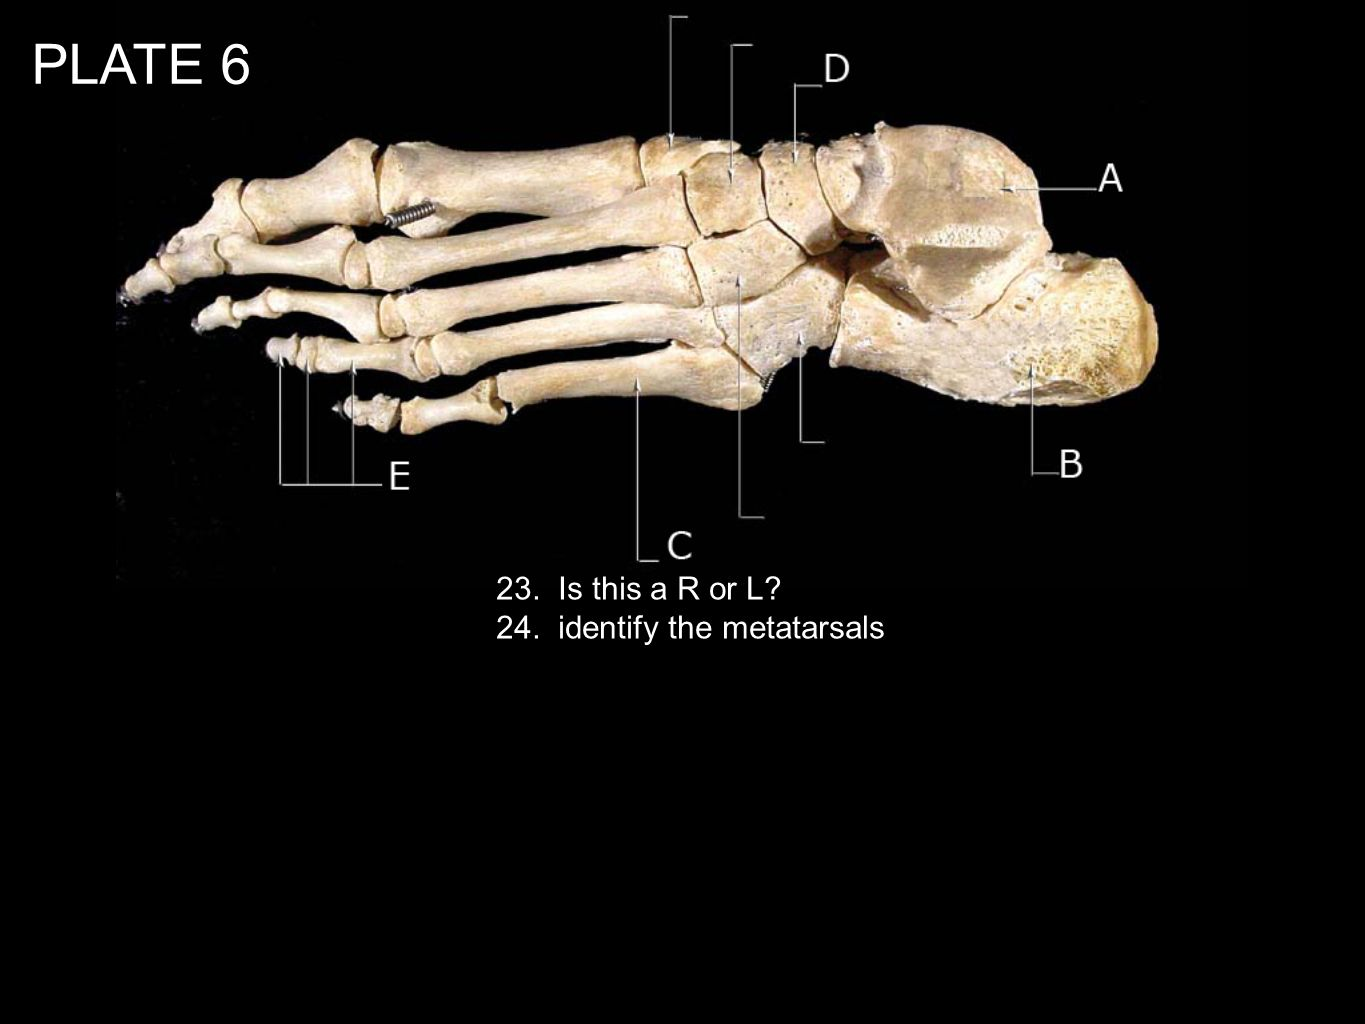 PLATE Is this a R or L 24. identify the metatarsals